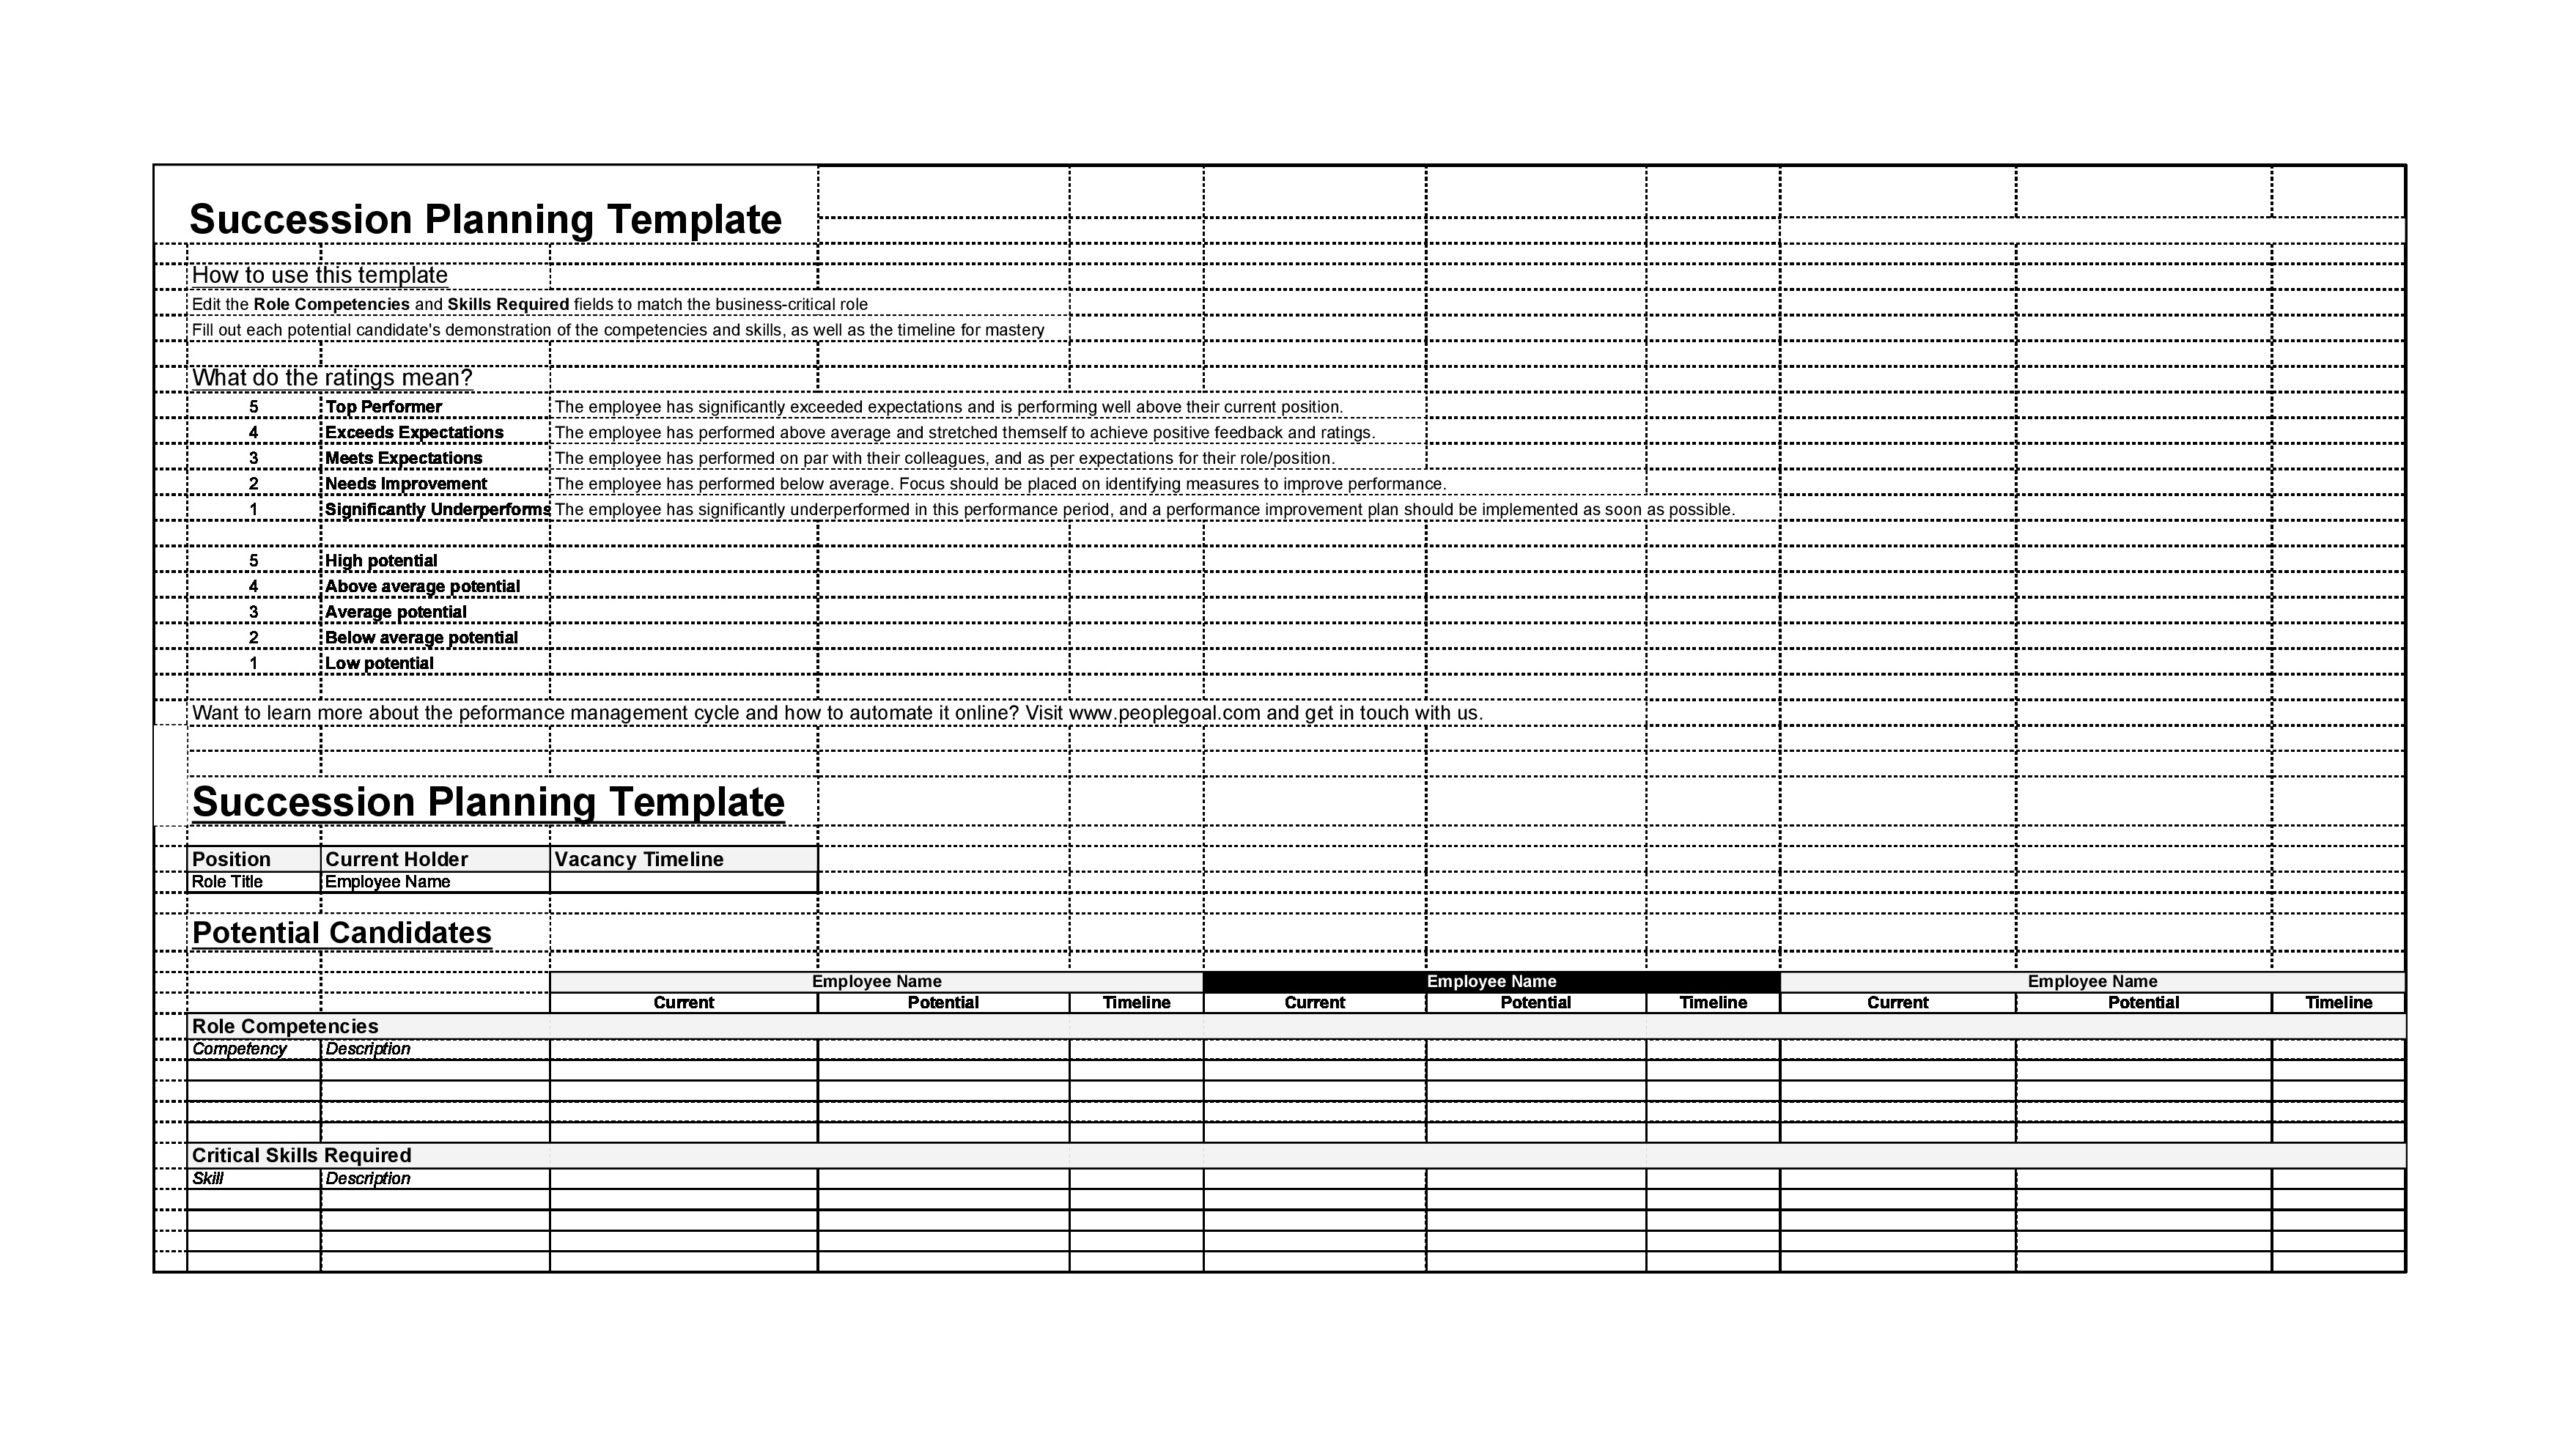 Free succession planning template 13